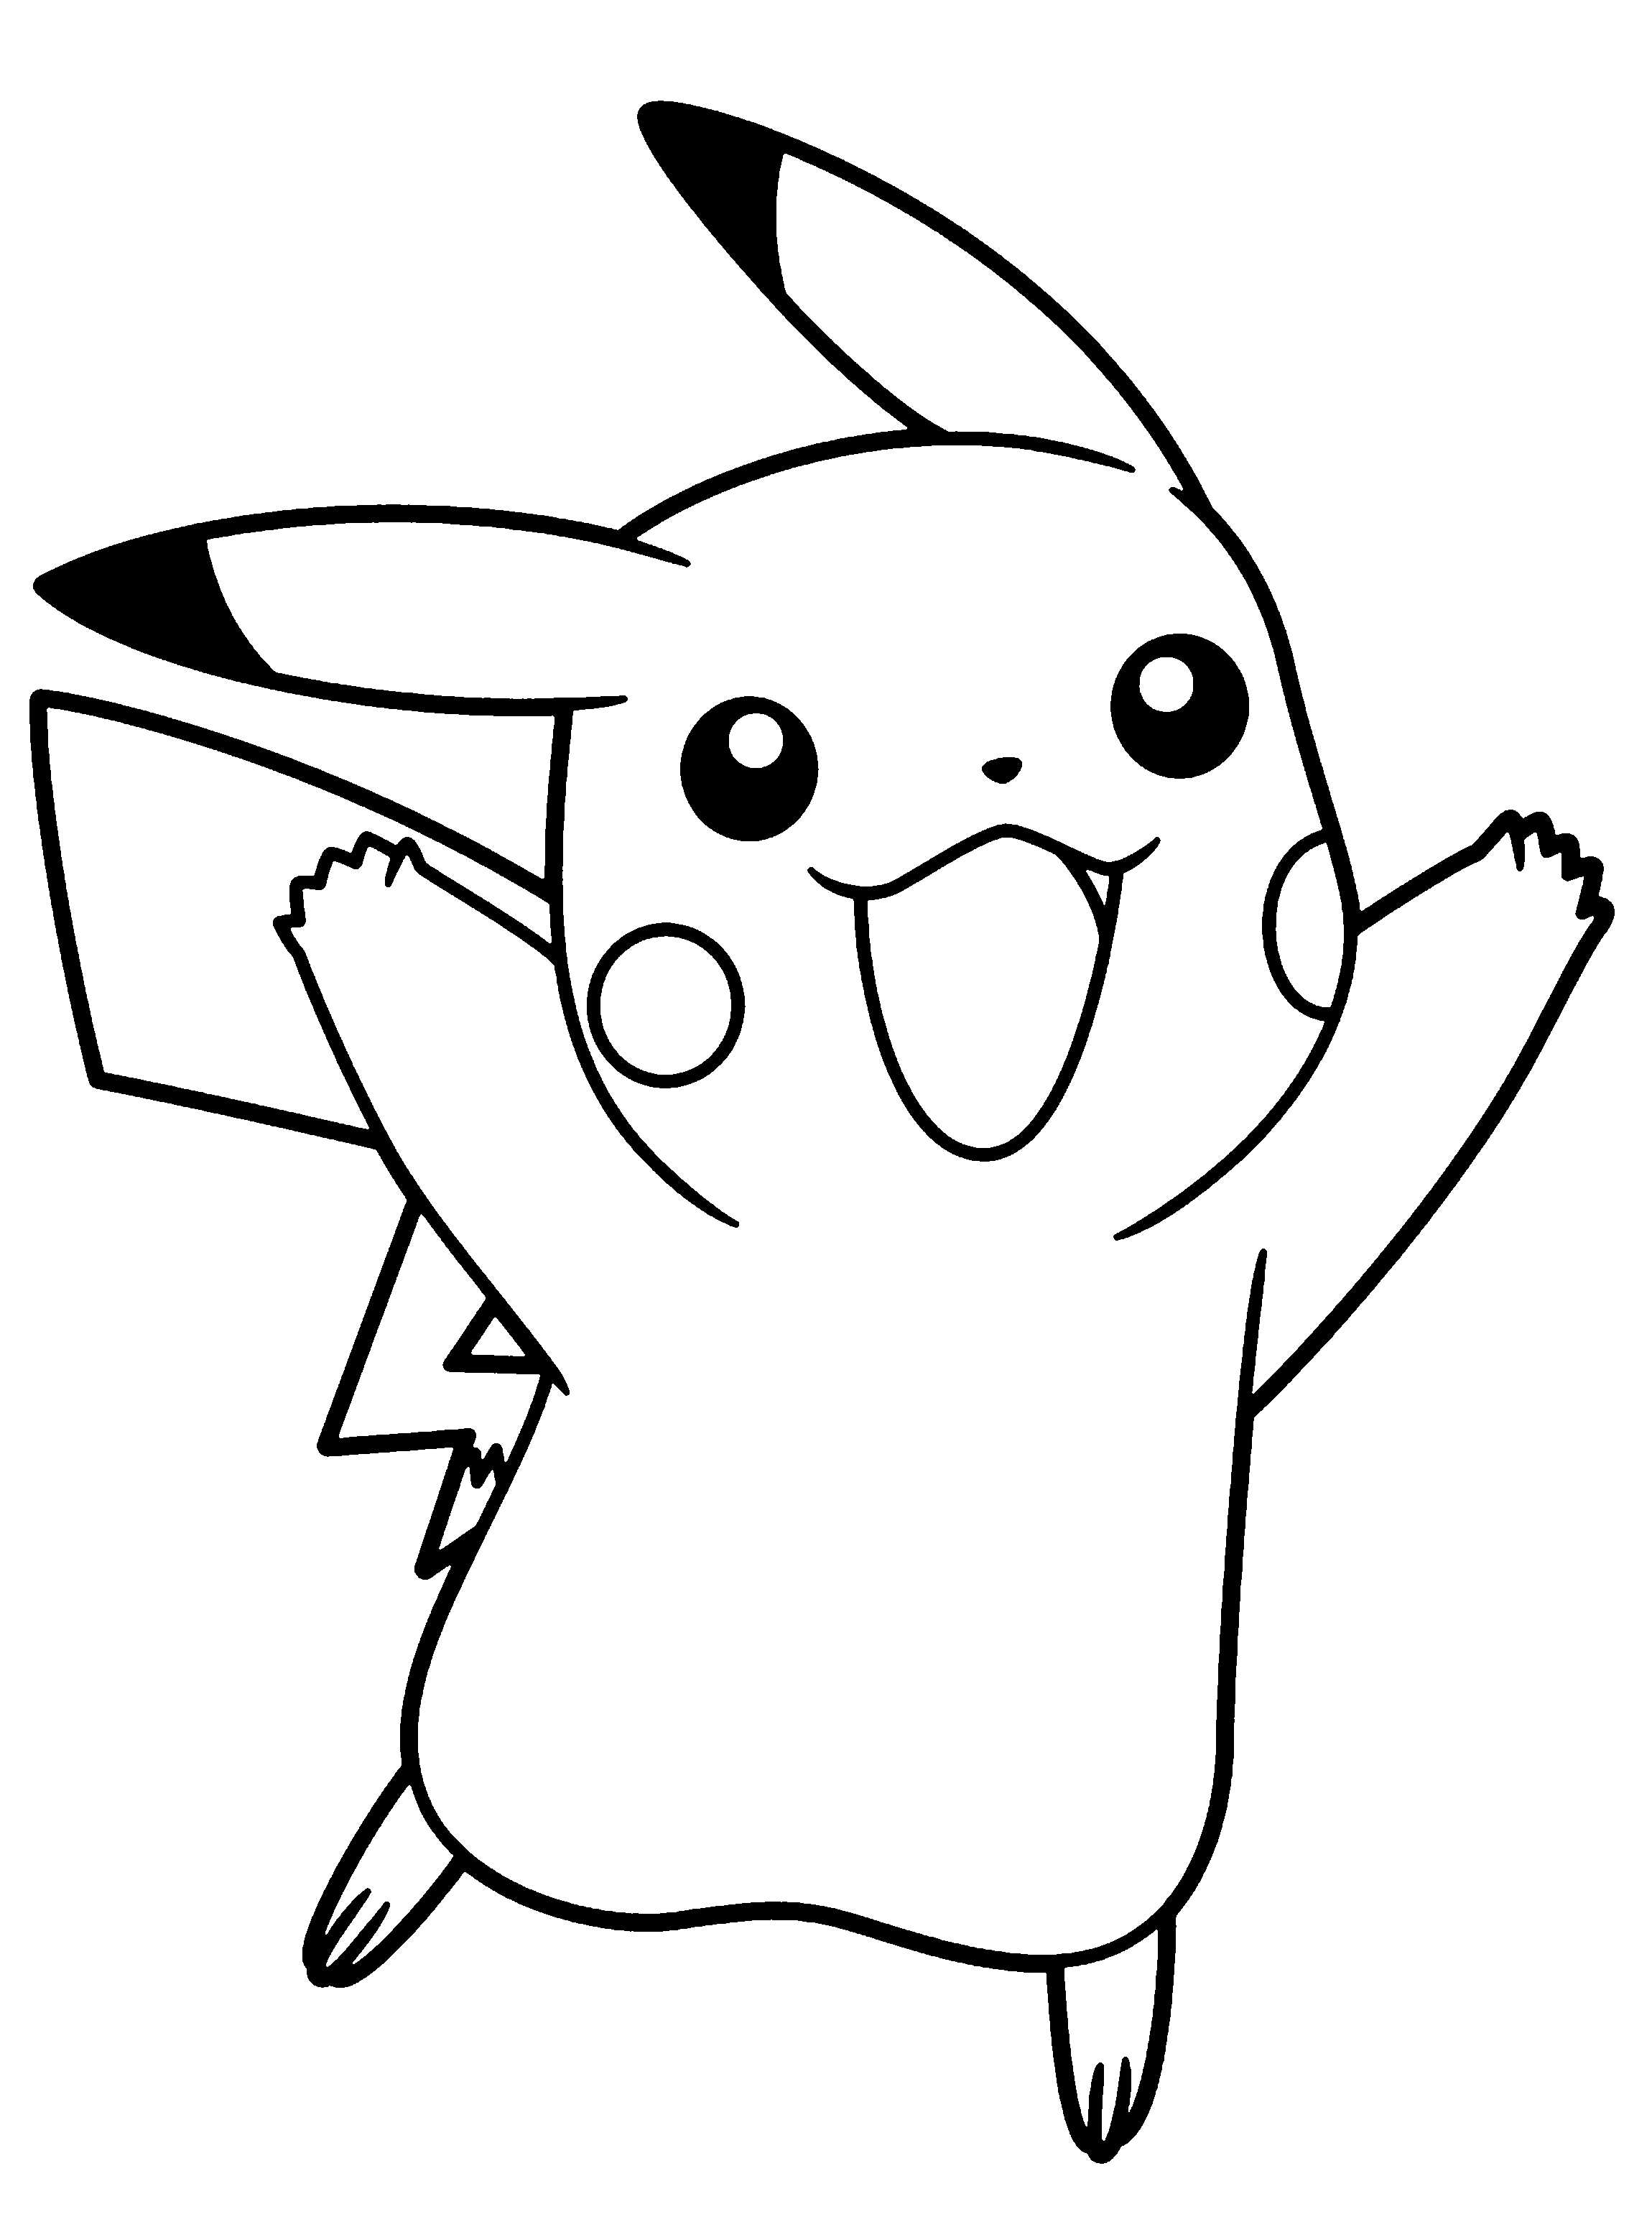 pikachu to color pikachu coloring pages color to pikachu